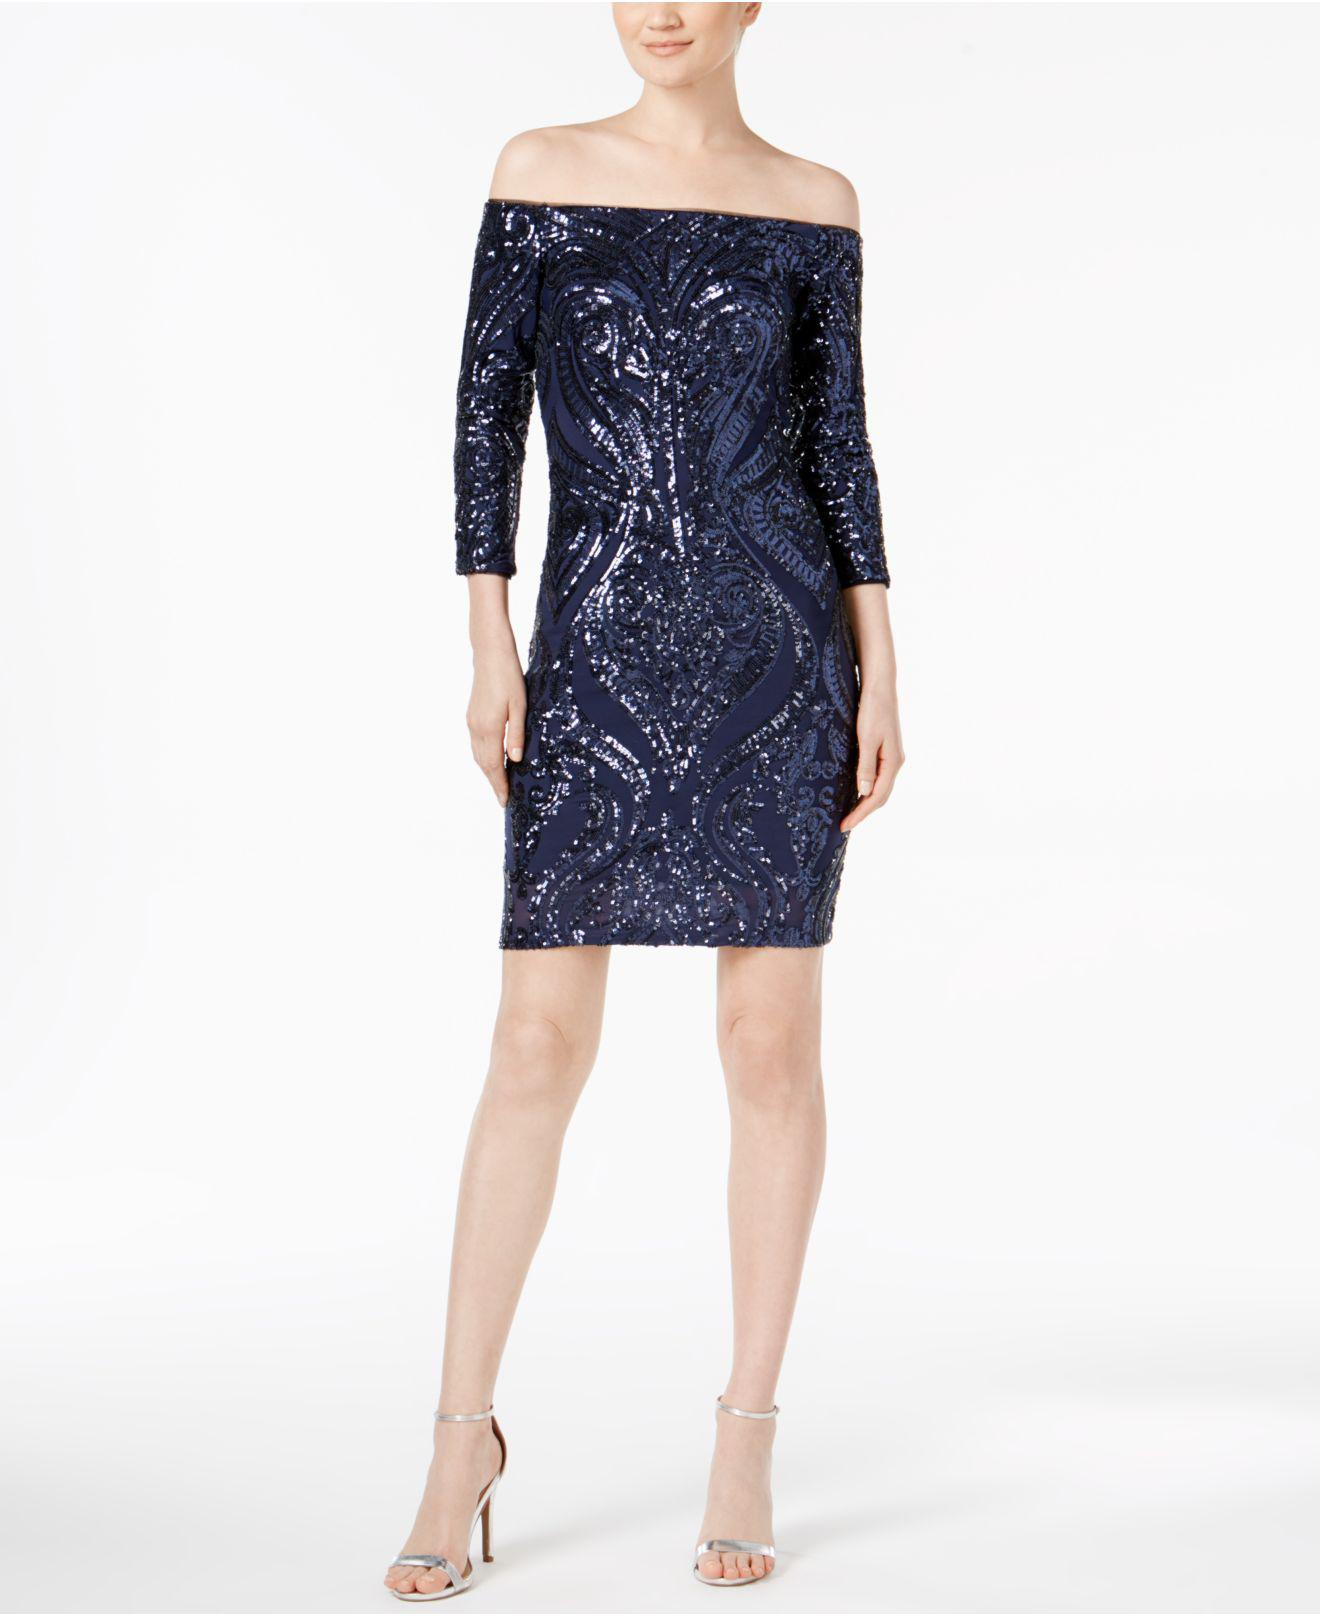 353f2776e065 Lyst - Betsy   Adam Off-the-shoulder Sequin Sheath Dress in Blue